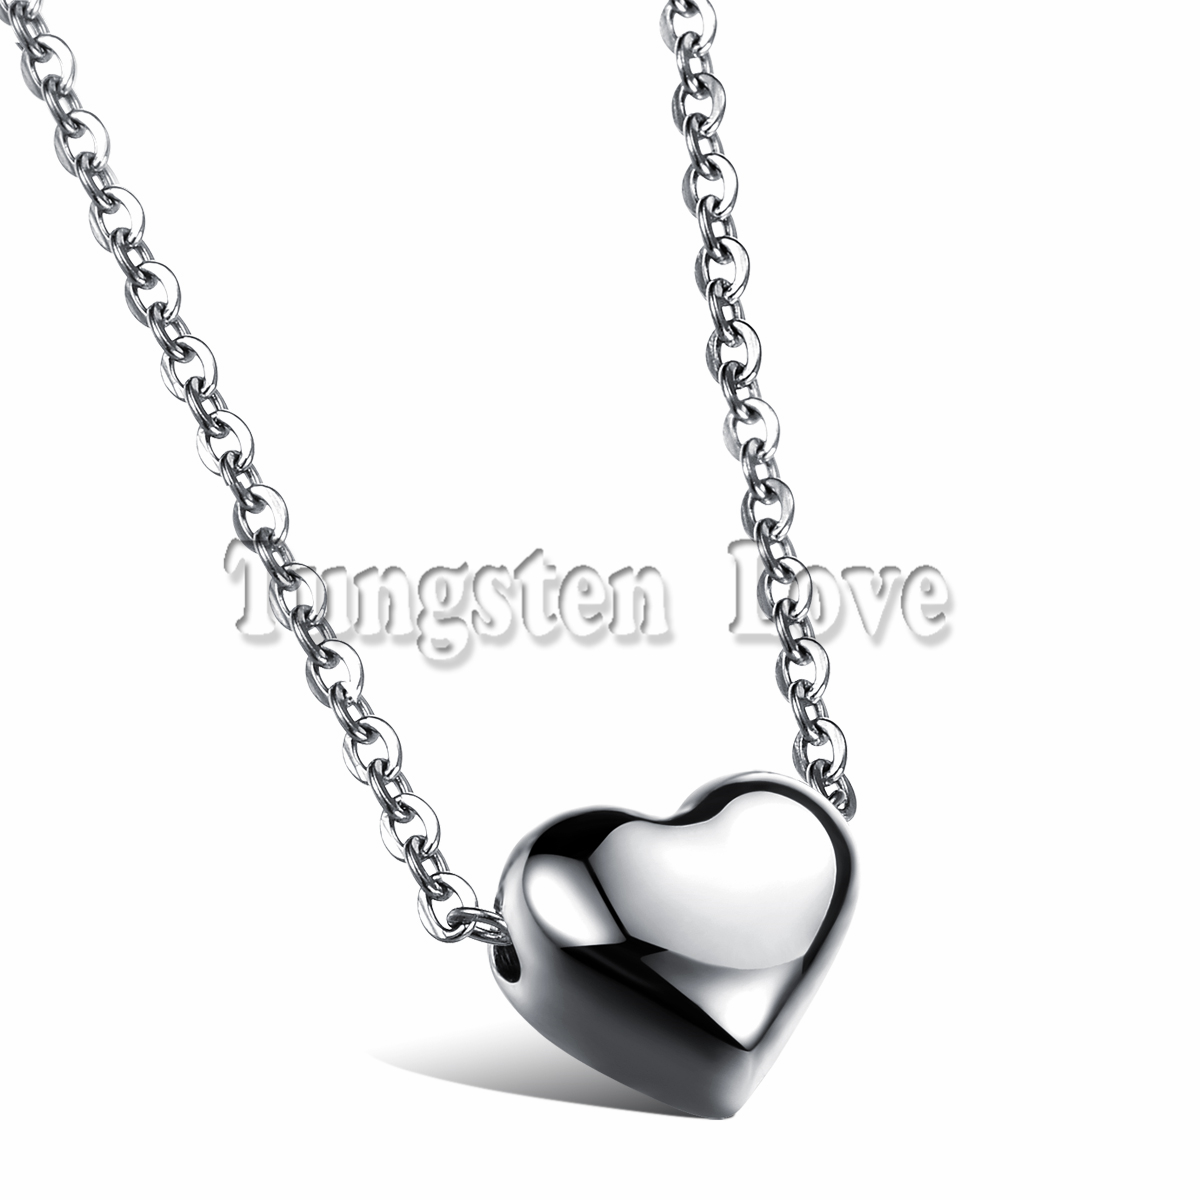 Fashion Heart Pendant Woman Collarbone Necklace Romantic Silver Stainless Steel Chain Women Jewelry collares mujer(China (Mainland))